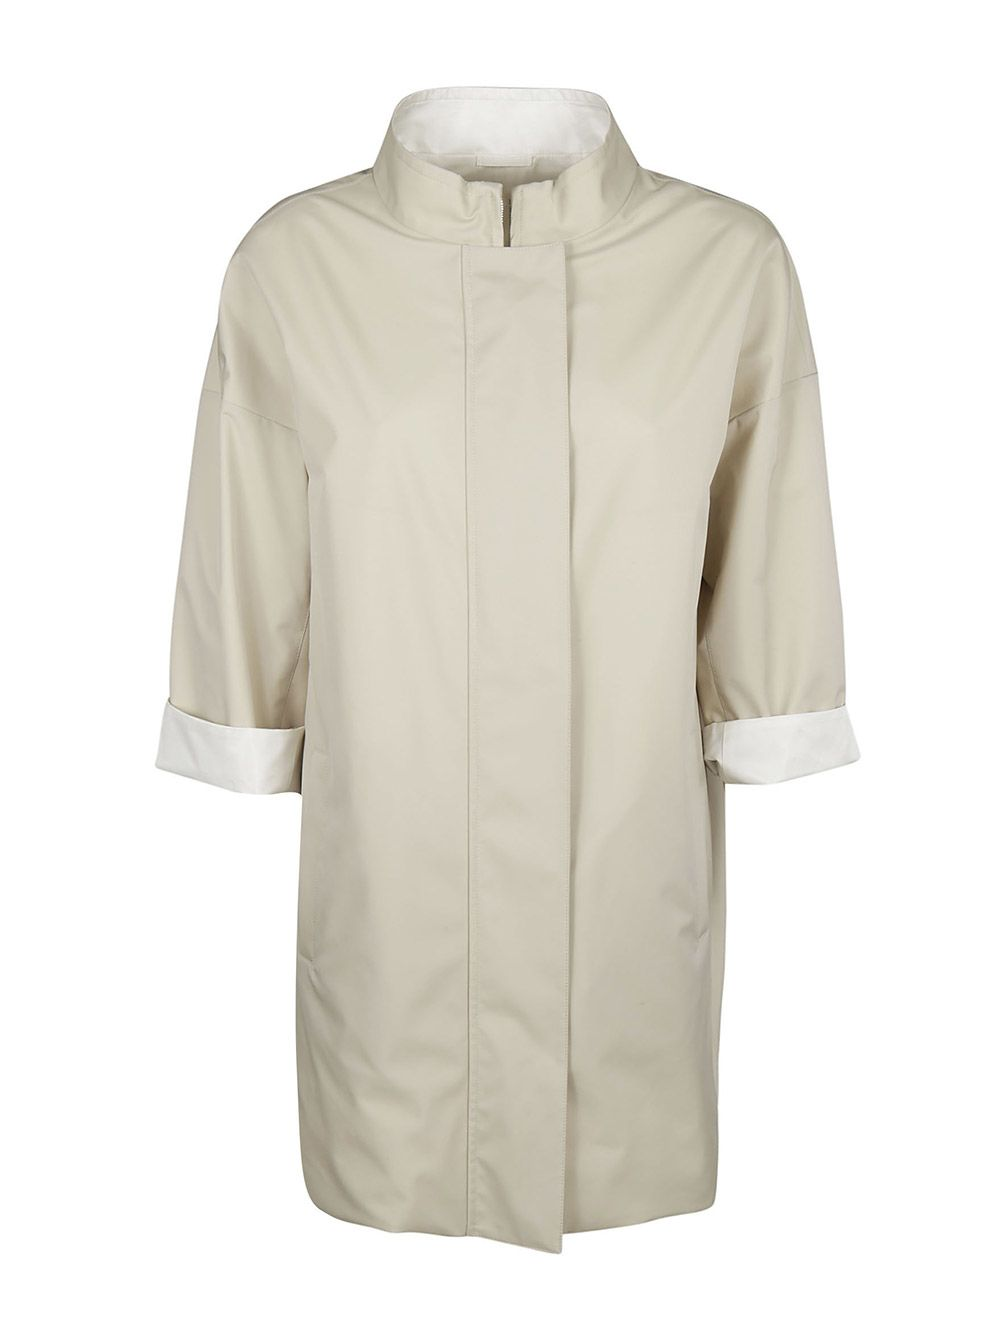 Standing Collar Raincoat